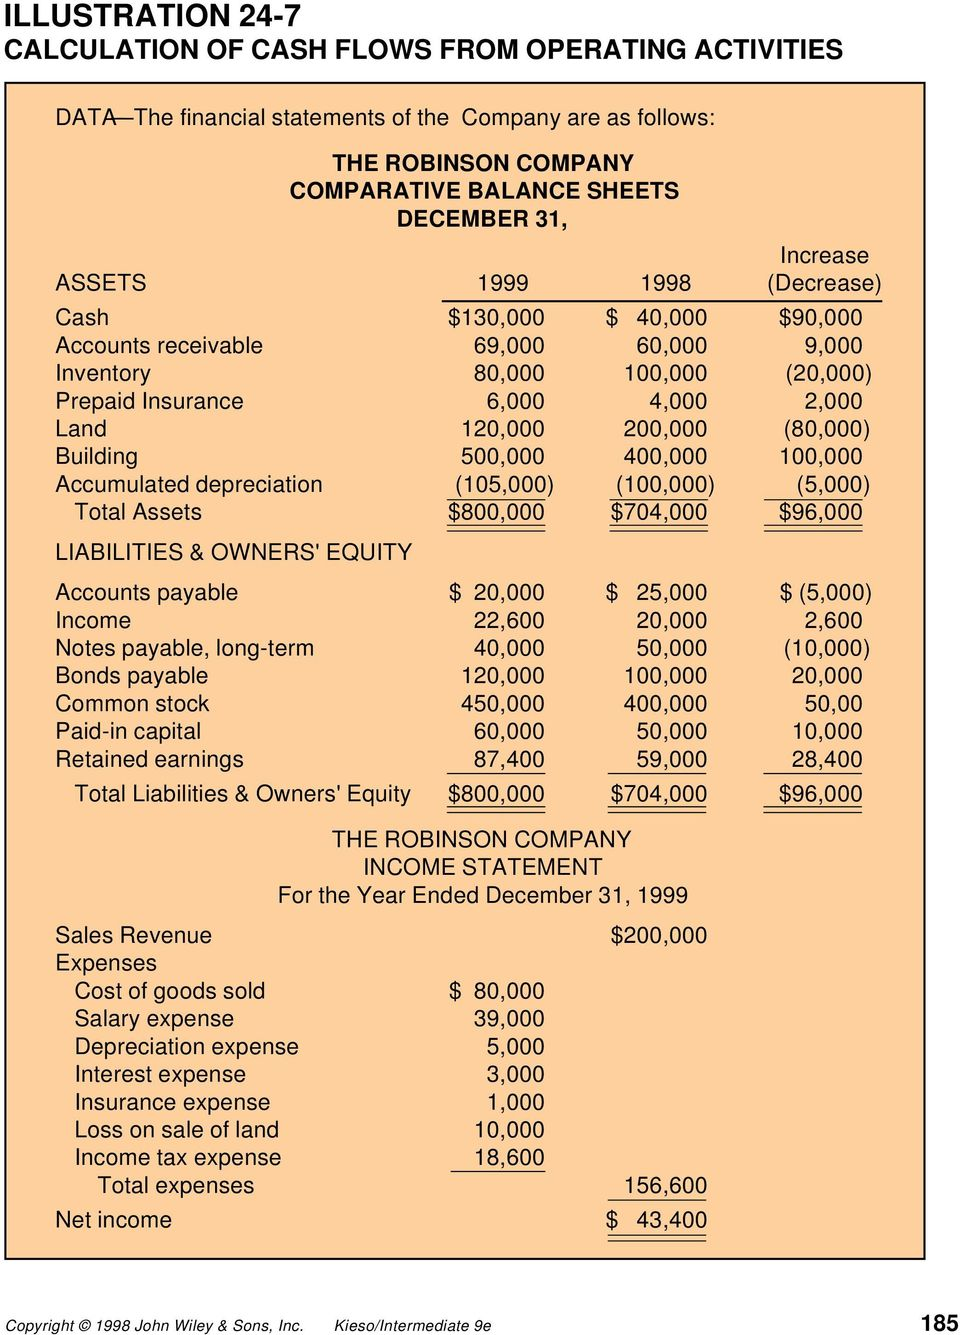 (105,000) (100,000) (5,000) Total Assets $800,000 $704,000 $96,000 LIABILITIES & OWNERS' EQUITY THE ROBINSON COMPANY COMPARATIVE BALANCE SHEETS DECEMBER 31, Accounts payable $ 20,000 $ 25,000 $